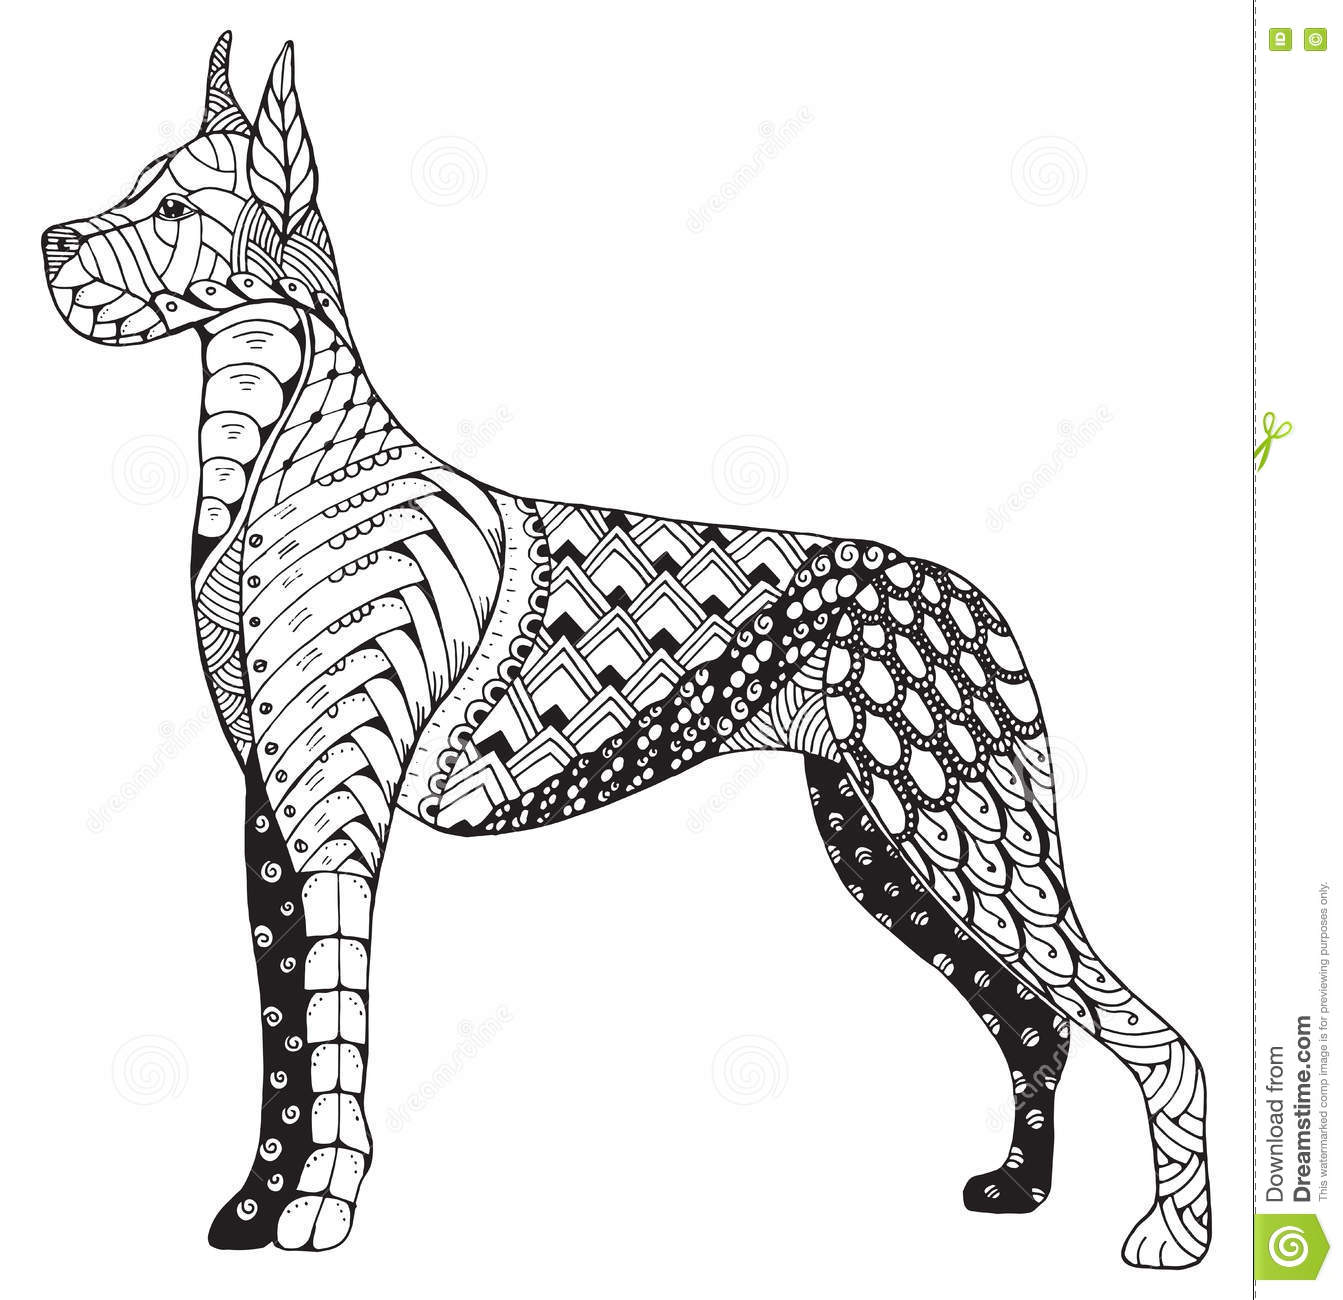 Great Dane Dog Zentangle Stylized Freehand Pencil Hand